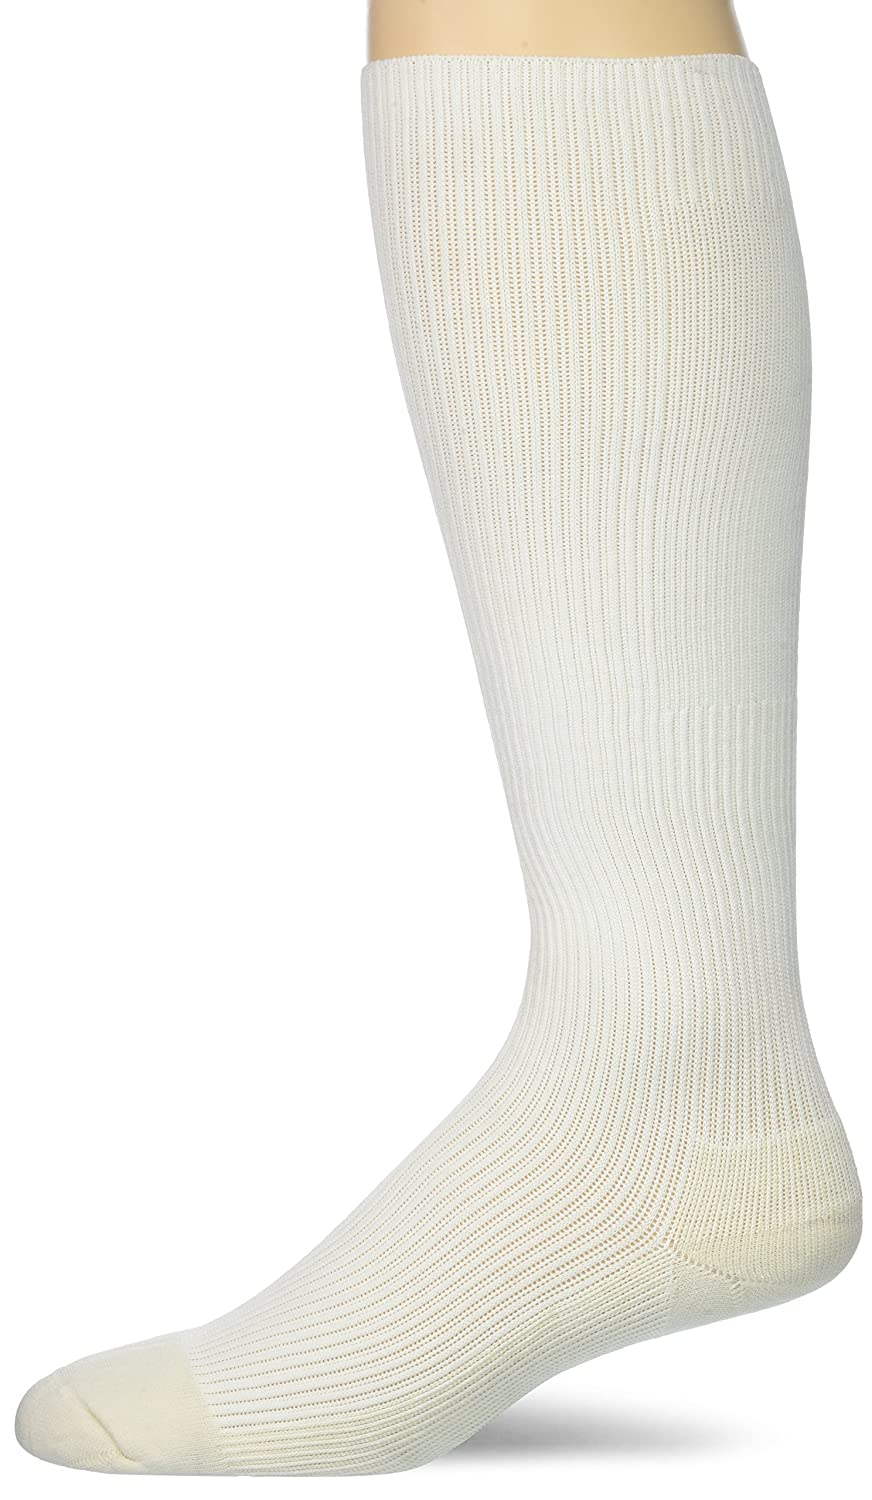 6dbd33b07e Amazon.com: Medline MDS1715AWH Curad Cushioned Compression Socks, A, White:  Health & Personal Care